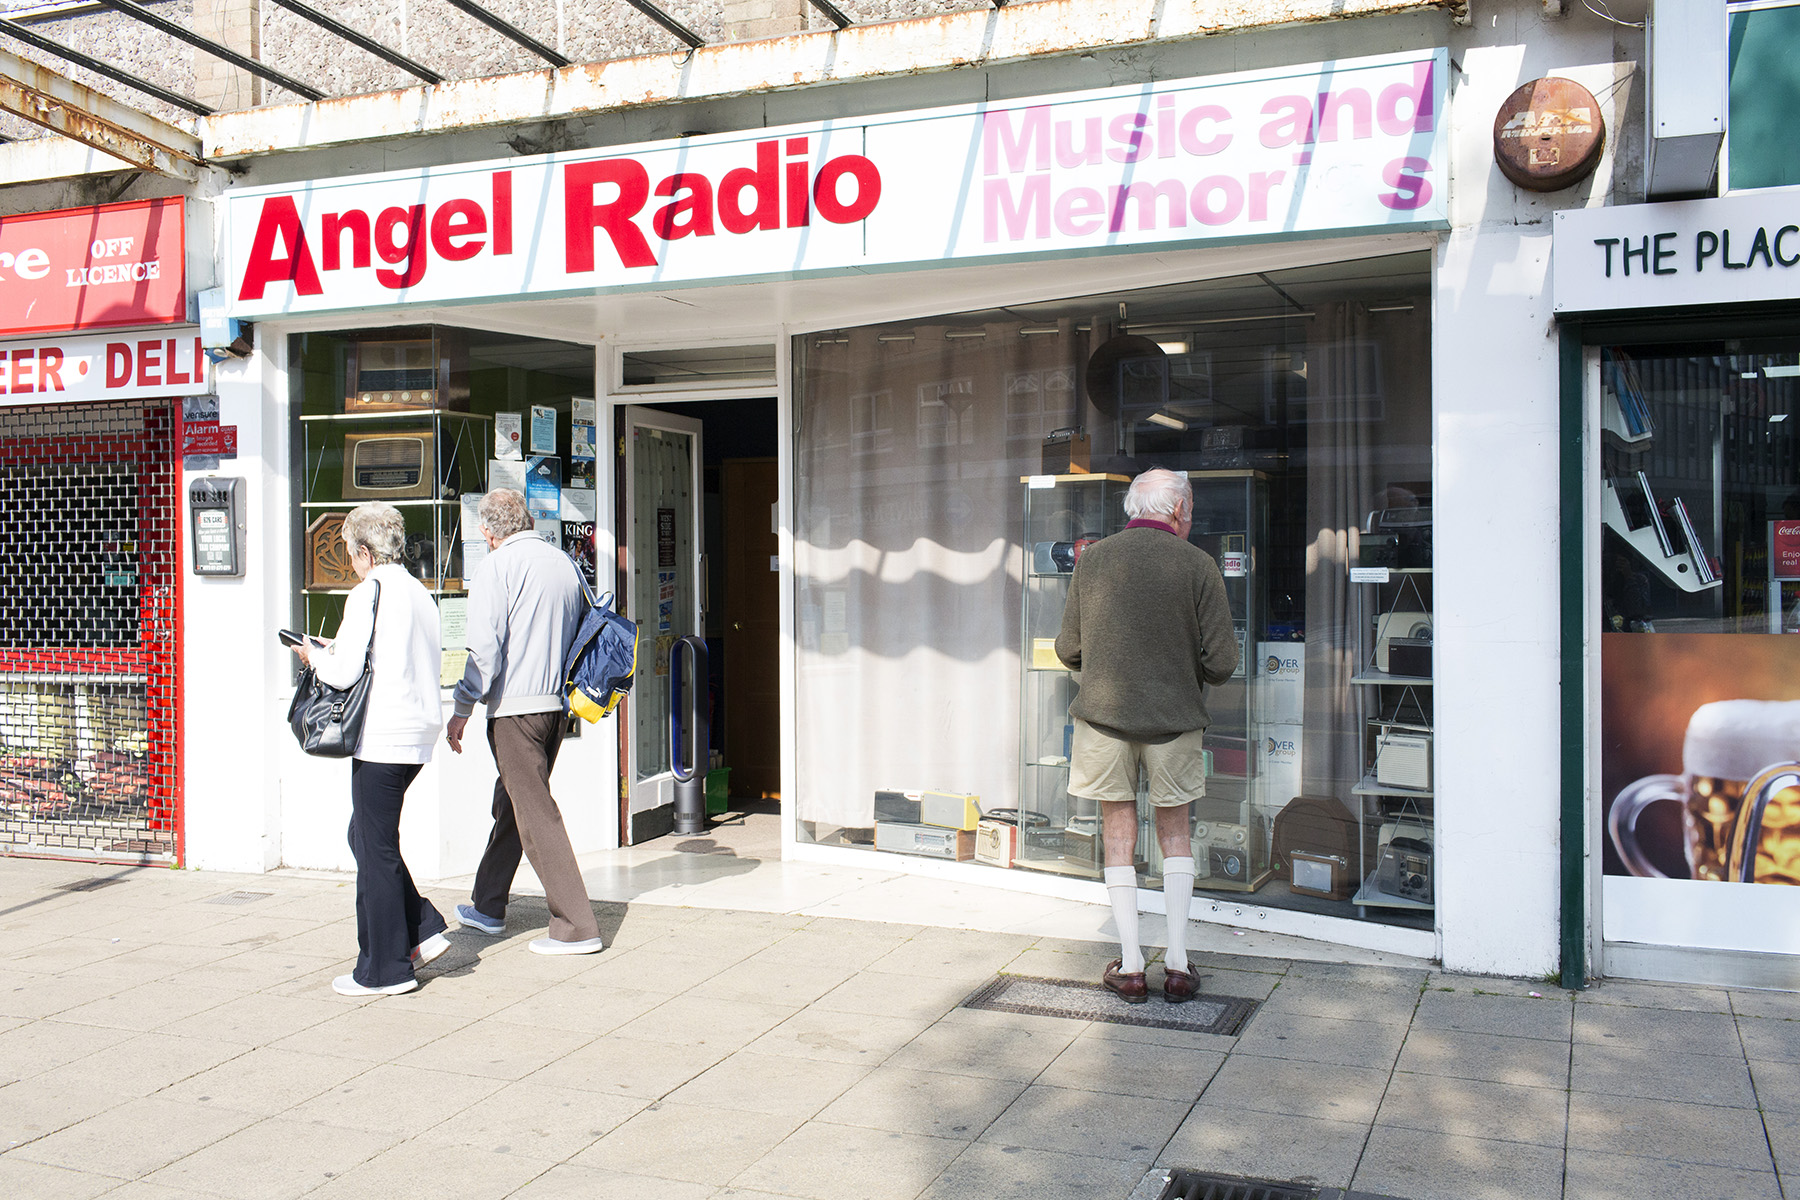 Angel Radio studios in Havant, England